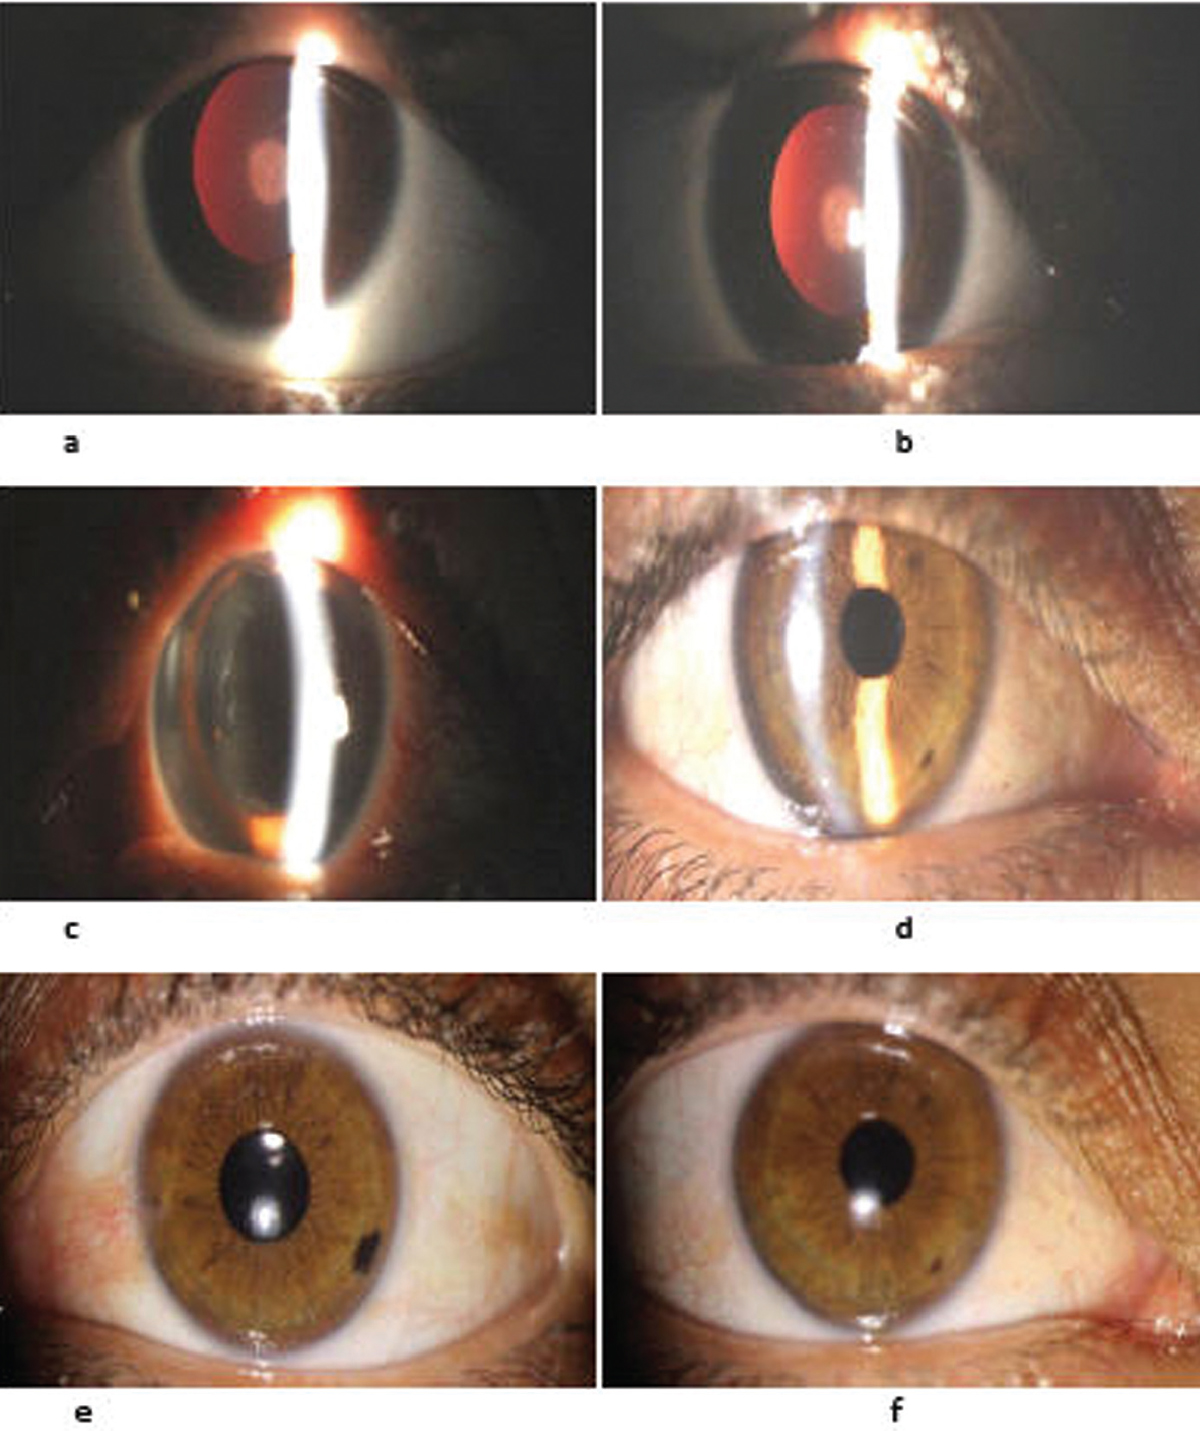 Evaluation Of Intraocular Inflammation After Intracameral Injection